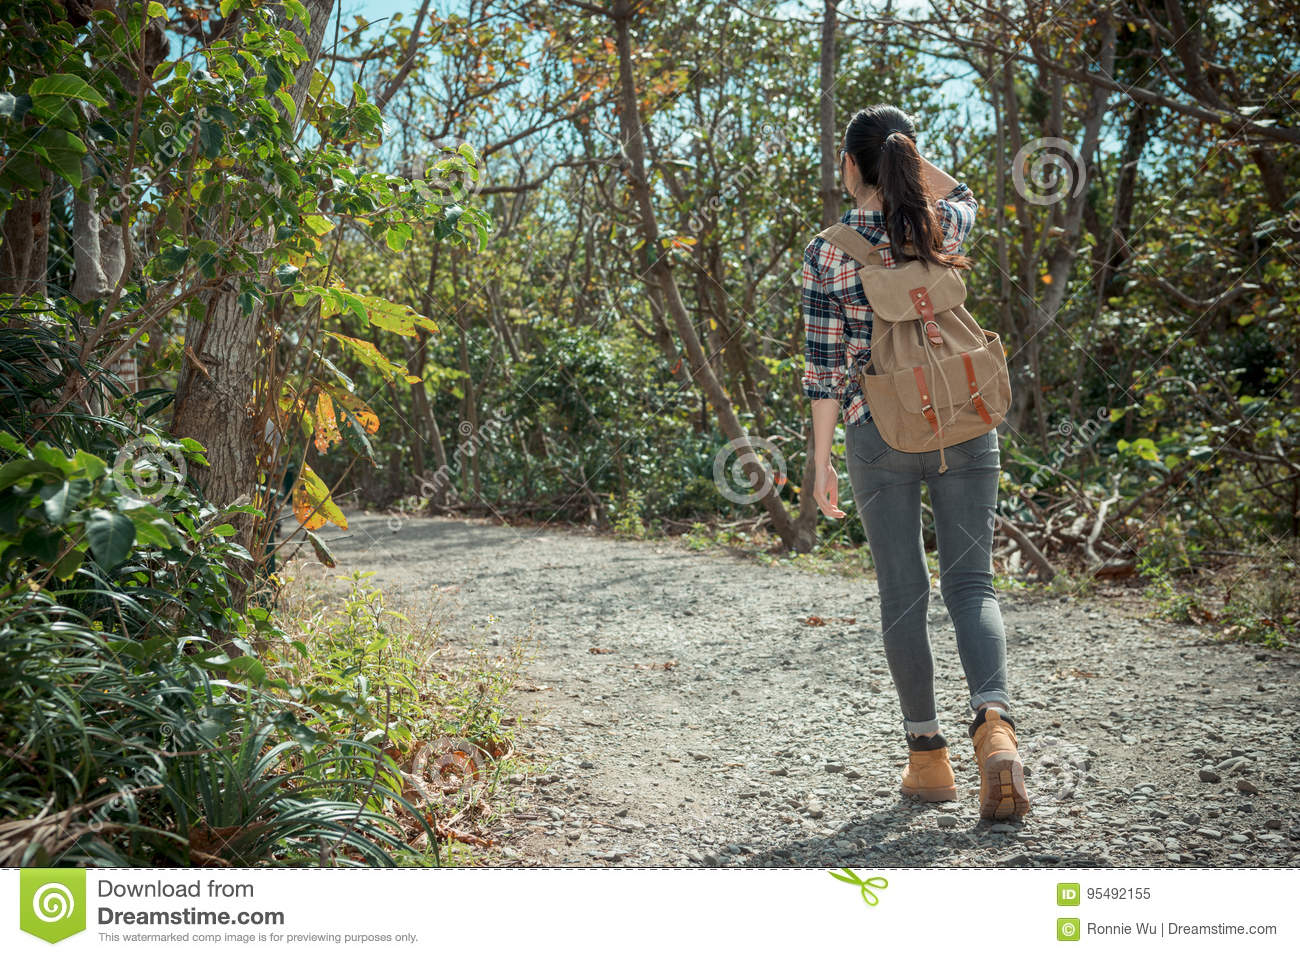 5e4b8ec9e01c Back View Photo Of Young Sweet Student Girl Stock Image - Image of ...